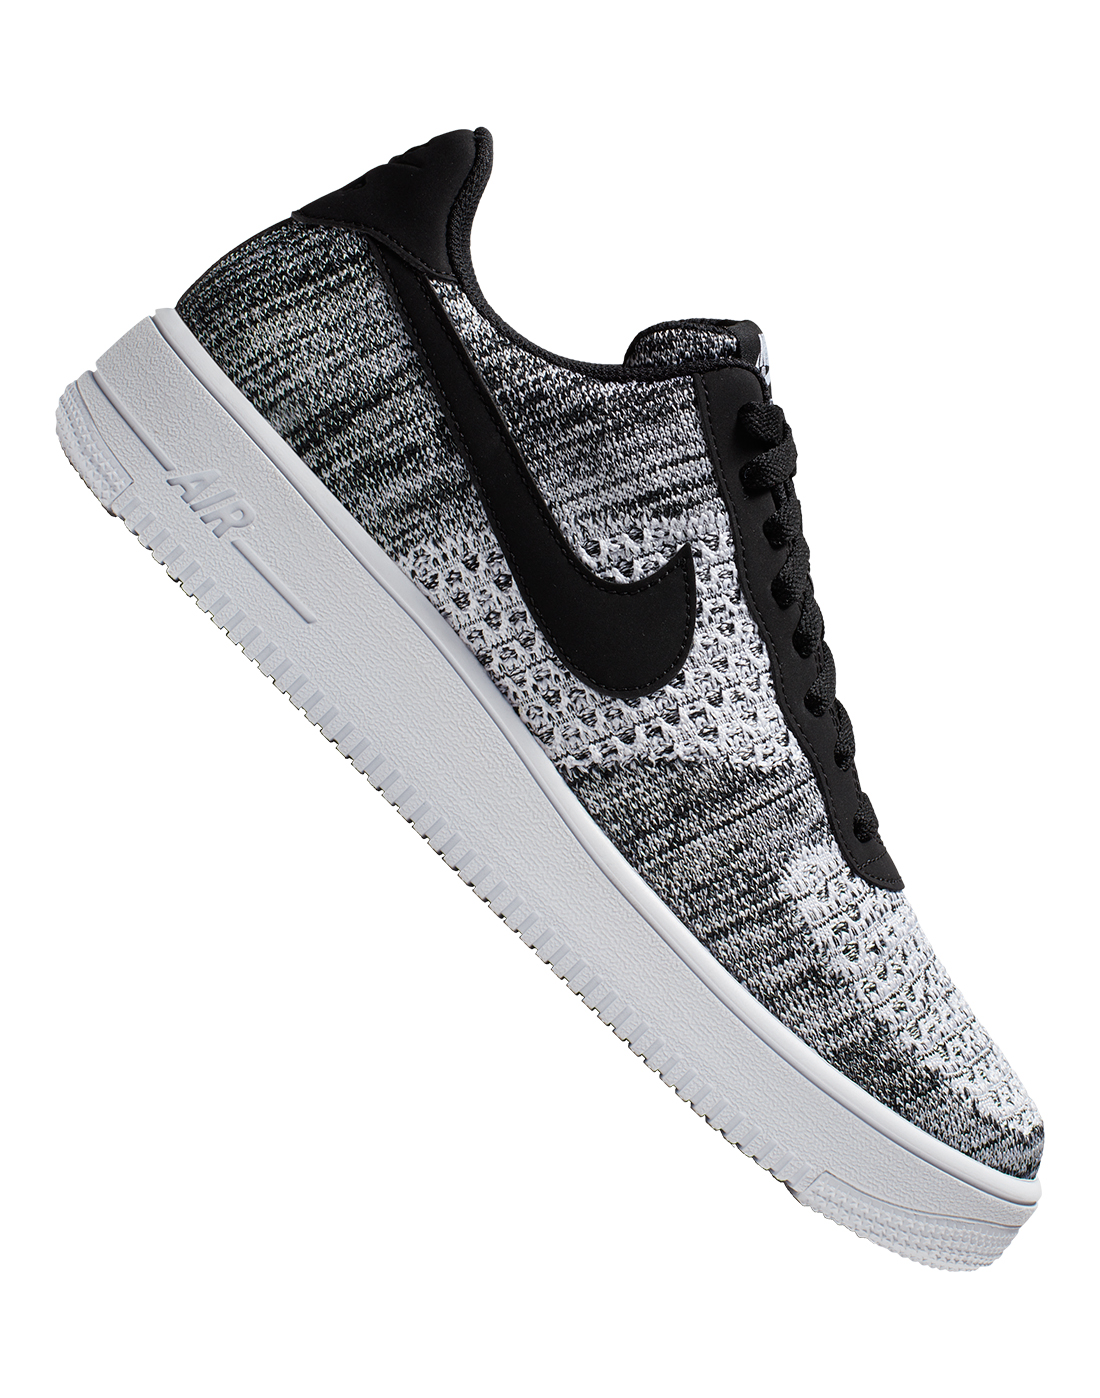 f2e6879277cc1 Men's Black & White Nike Air Force 1 Flyknit | Life Style Sports